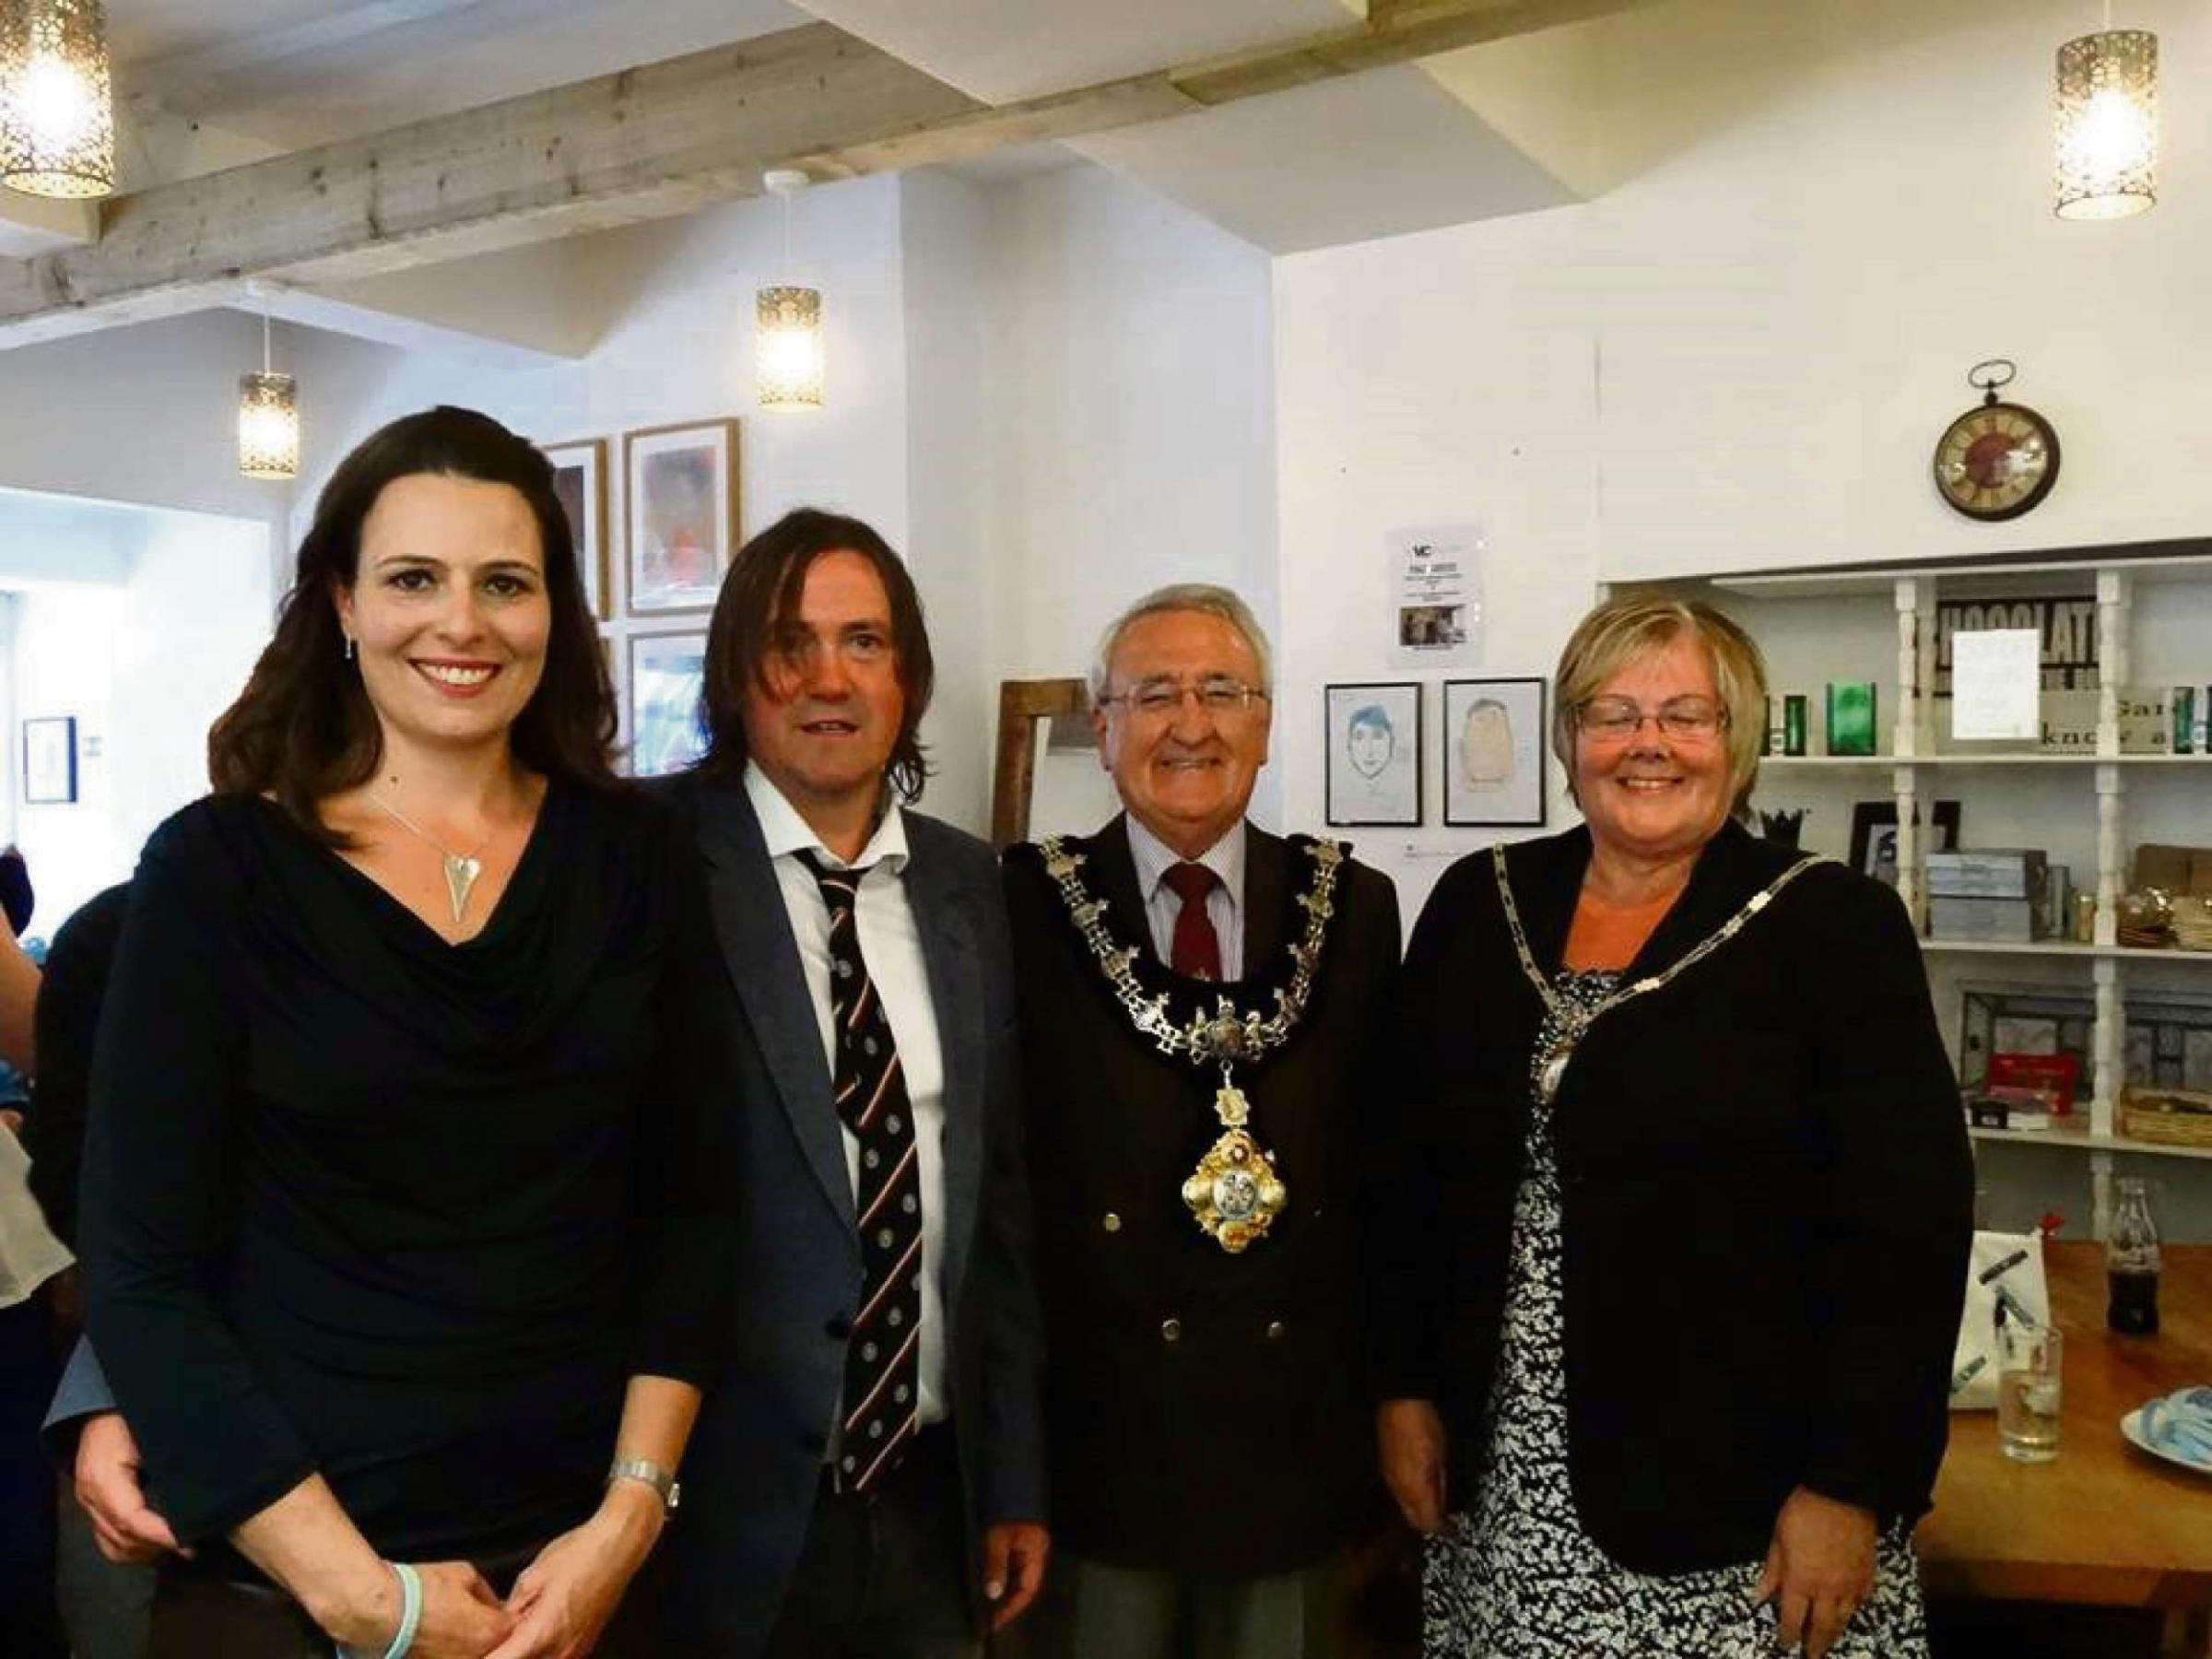 Barry John MBE pictured with Haverfordwest Mayor and Mayoress at an earlier exhibition opening.